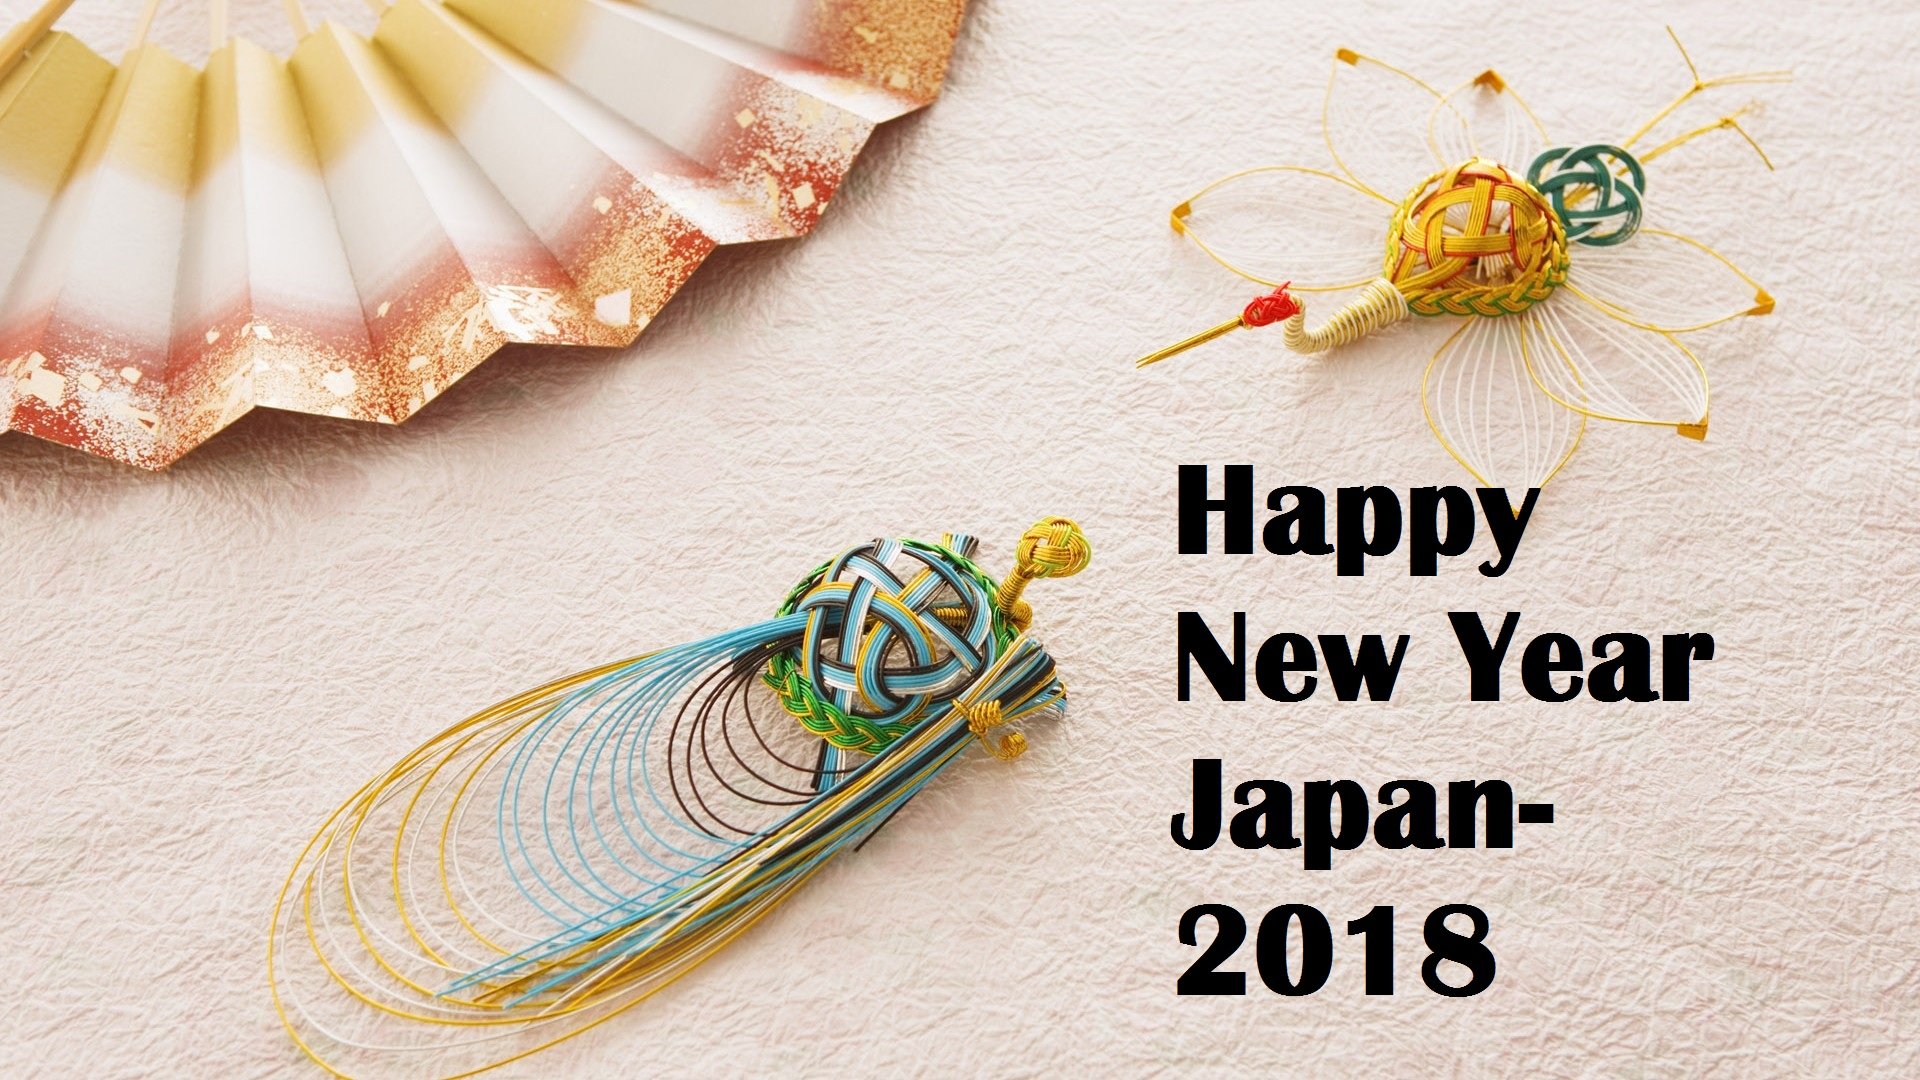 New-Years-Japanese-Cultural-Hd-wallpapers-Images